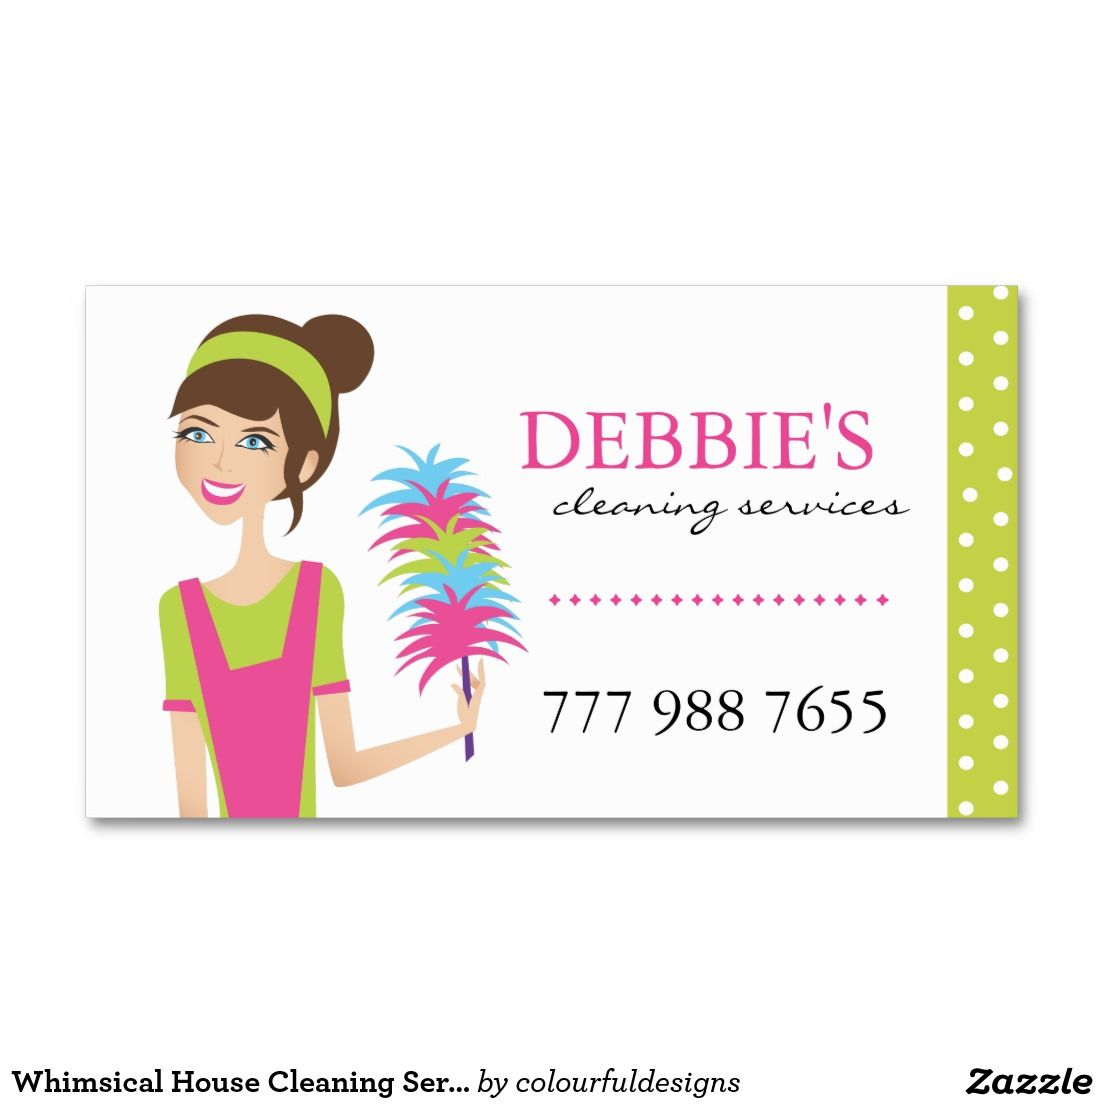 House cleaning business cards ideas photos cheese balls house cleaning business cards ideas photos magicingreecefo Images